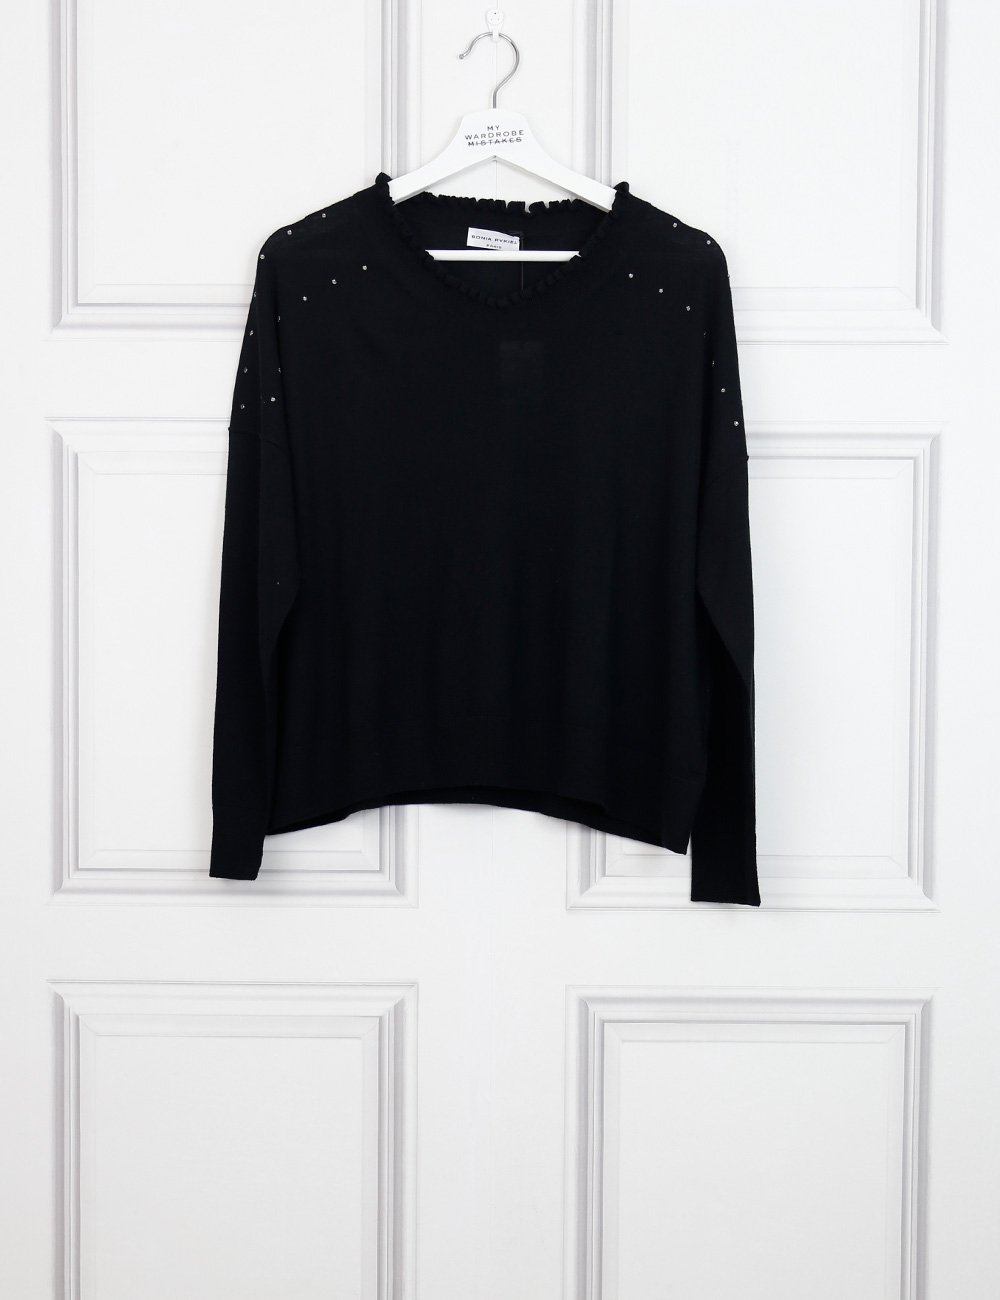 Sonia Rykiel black v neck pullover with rhinestones embellishment 8Uk